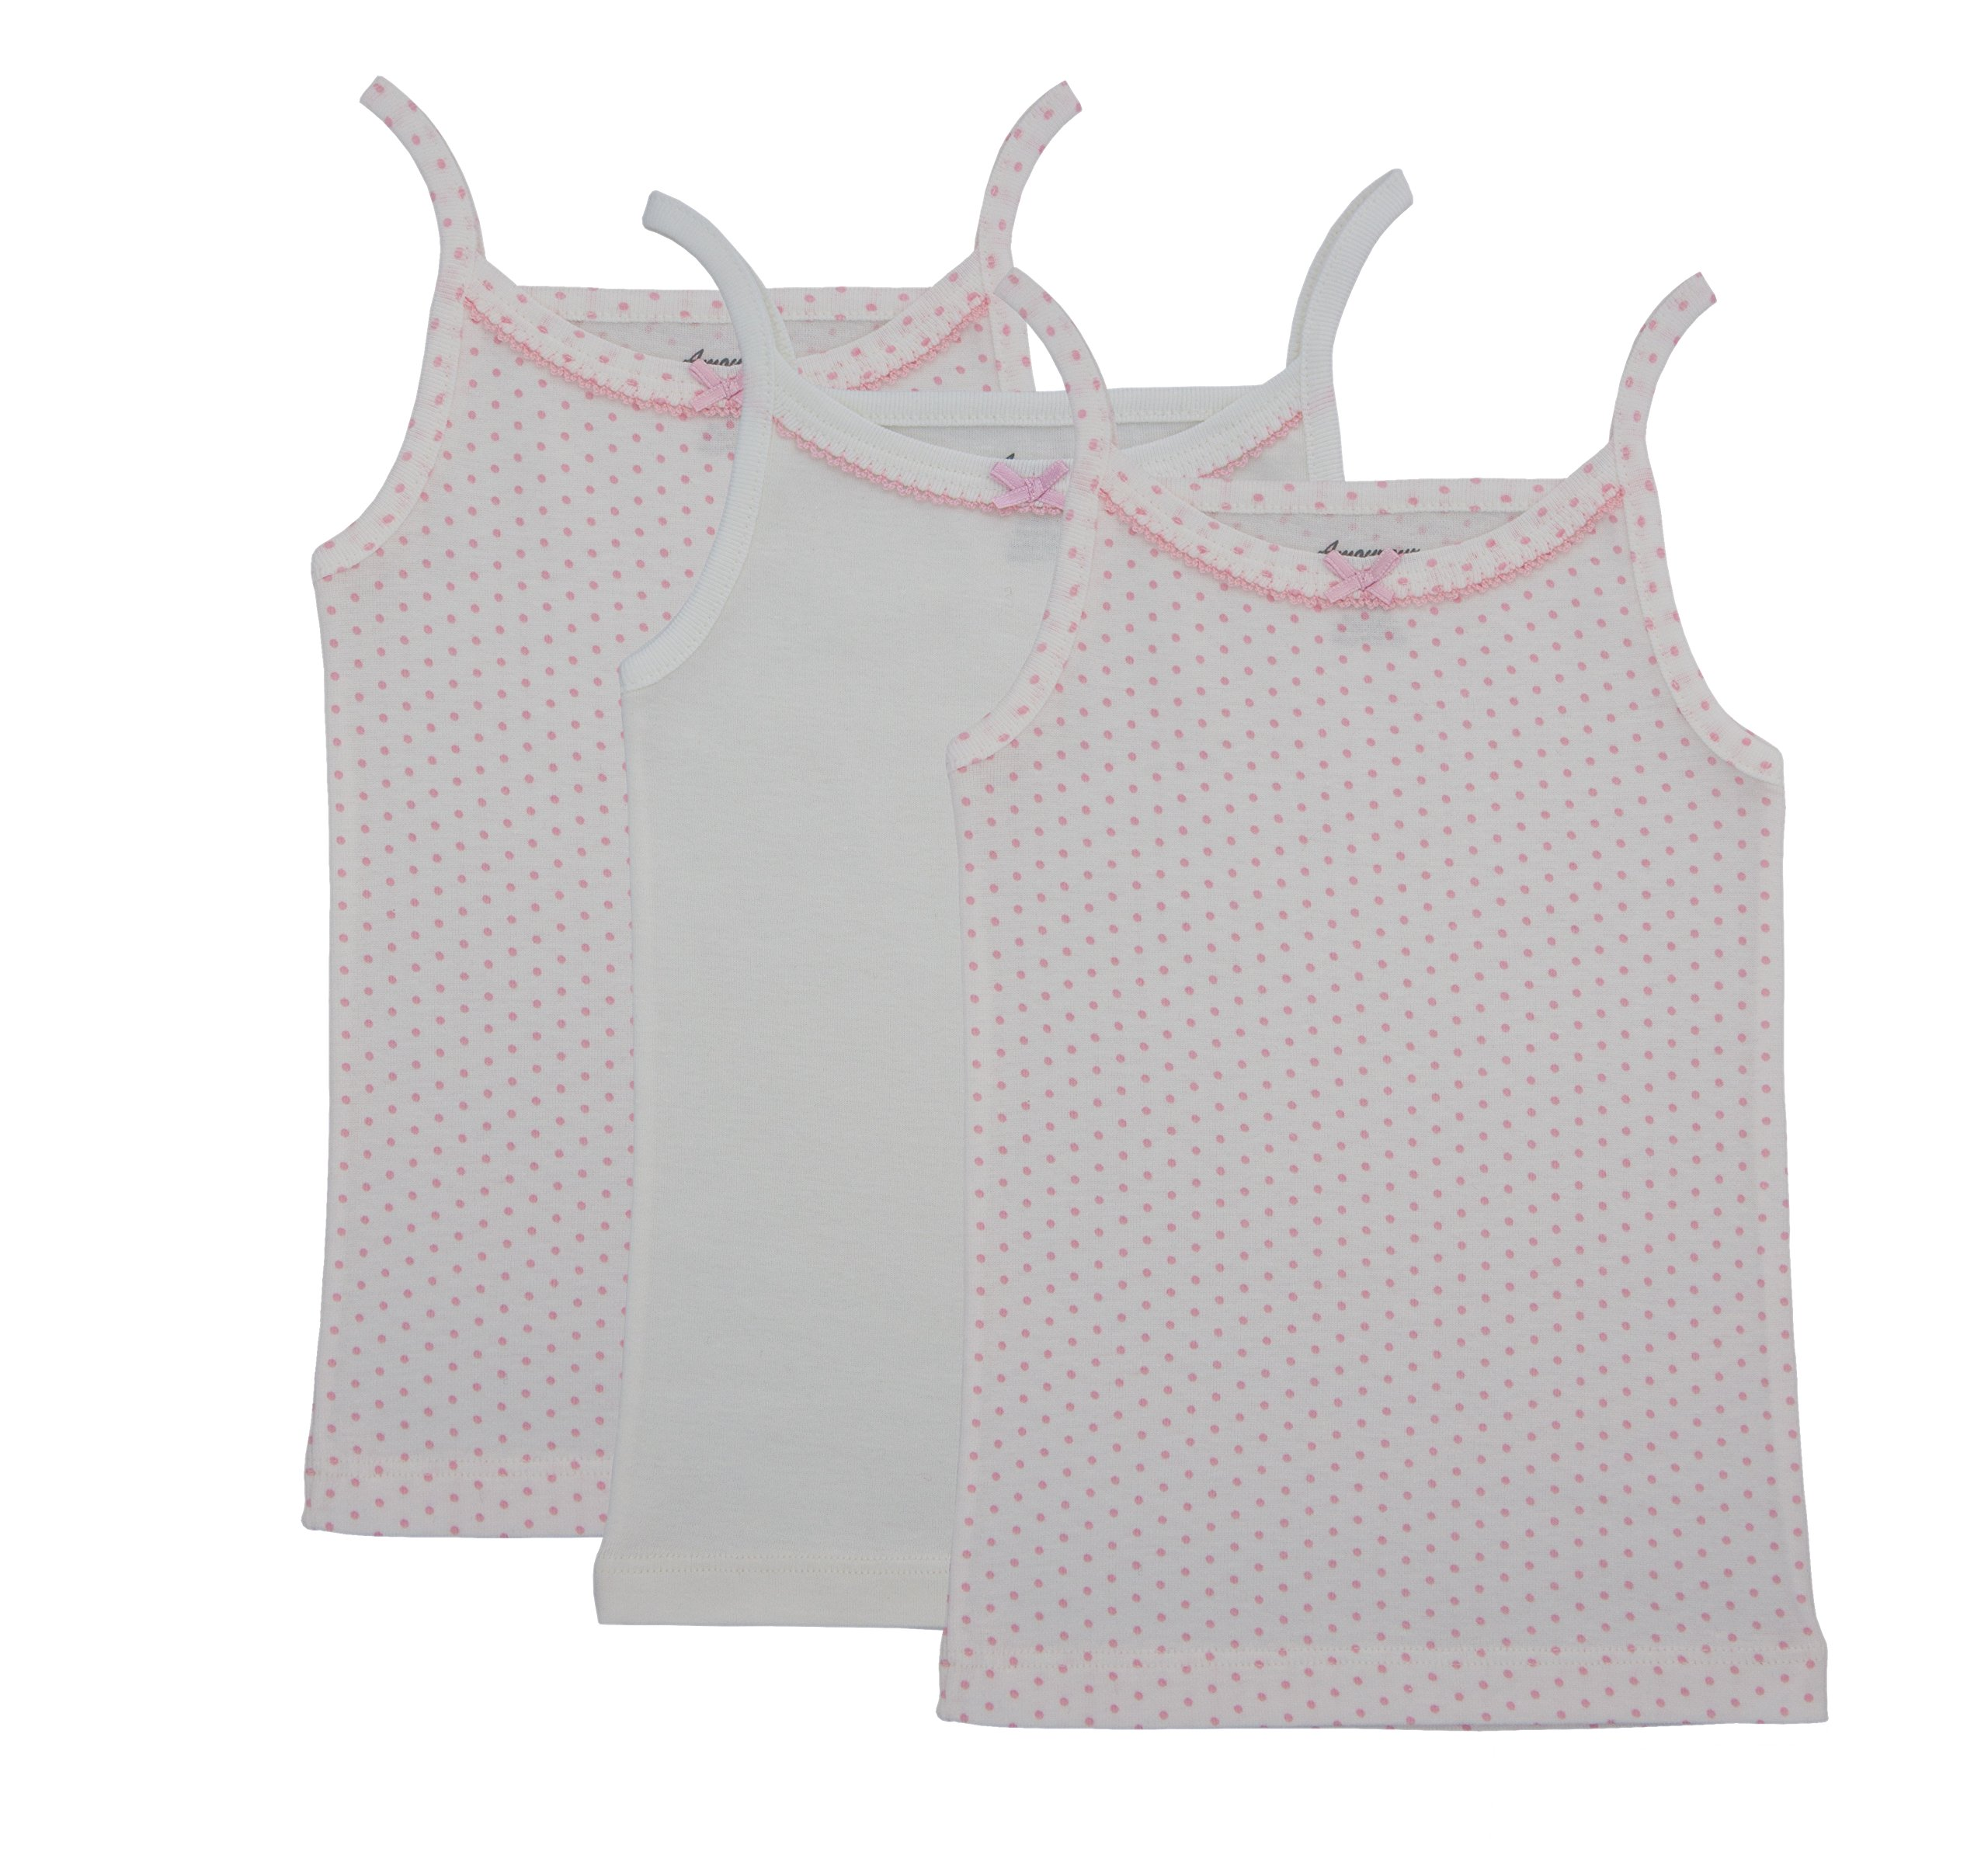 Amoureux Bebe Camisole Undershirts for Toddlers & Girls- Extra Soft Turkish Cotton Tank Tops- Pink & White Polka Dots, Size 8-9 (3 Pack) by Amoureux Bebe (Image #1)